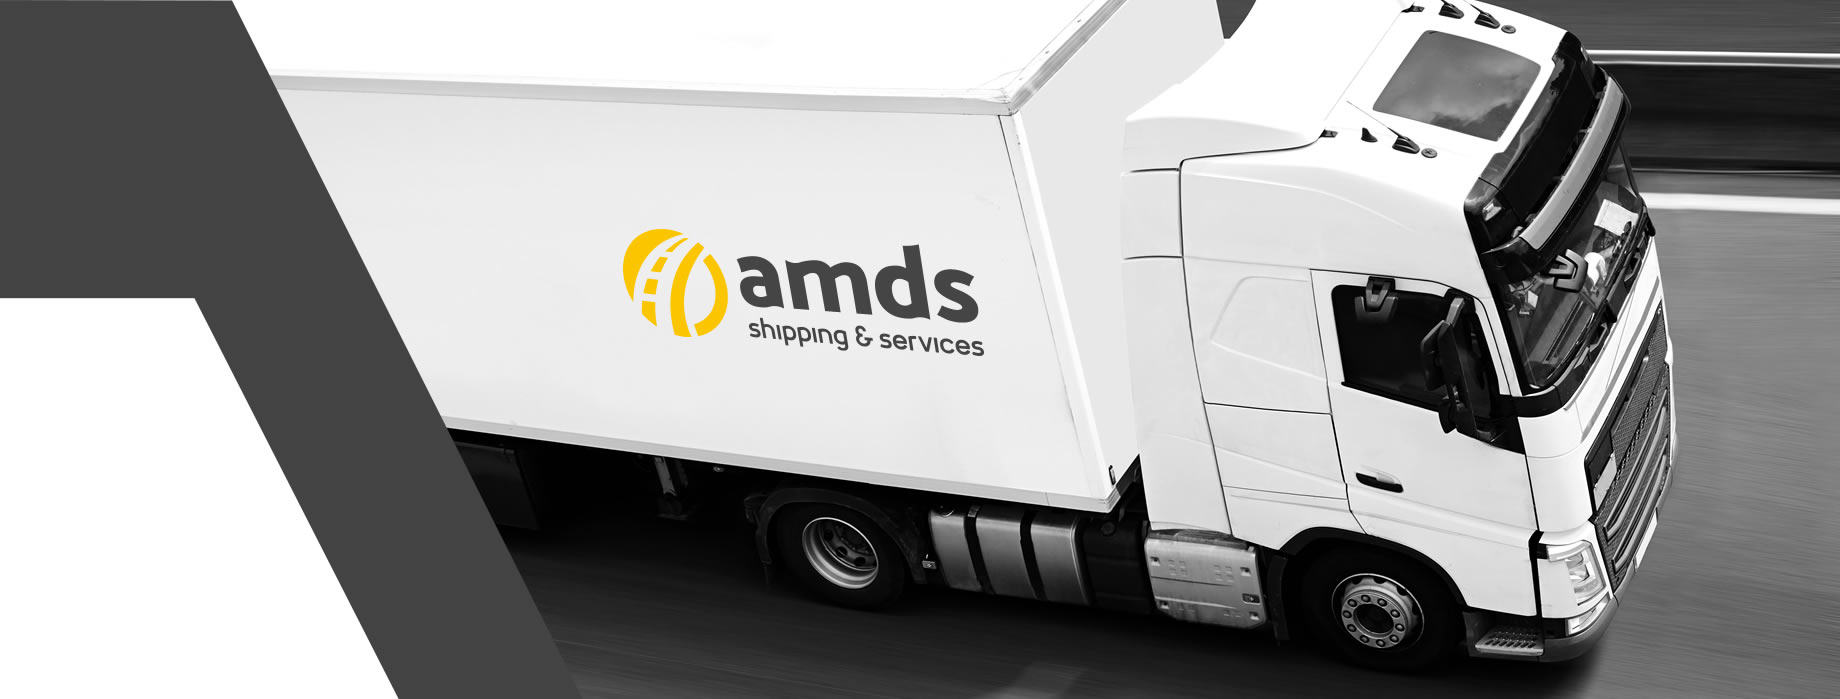 amds-banner-home-01